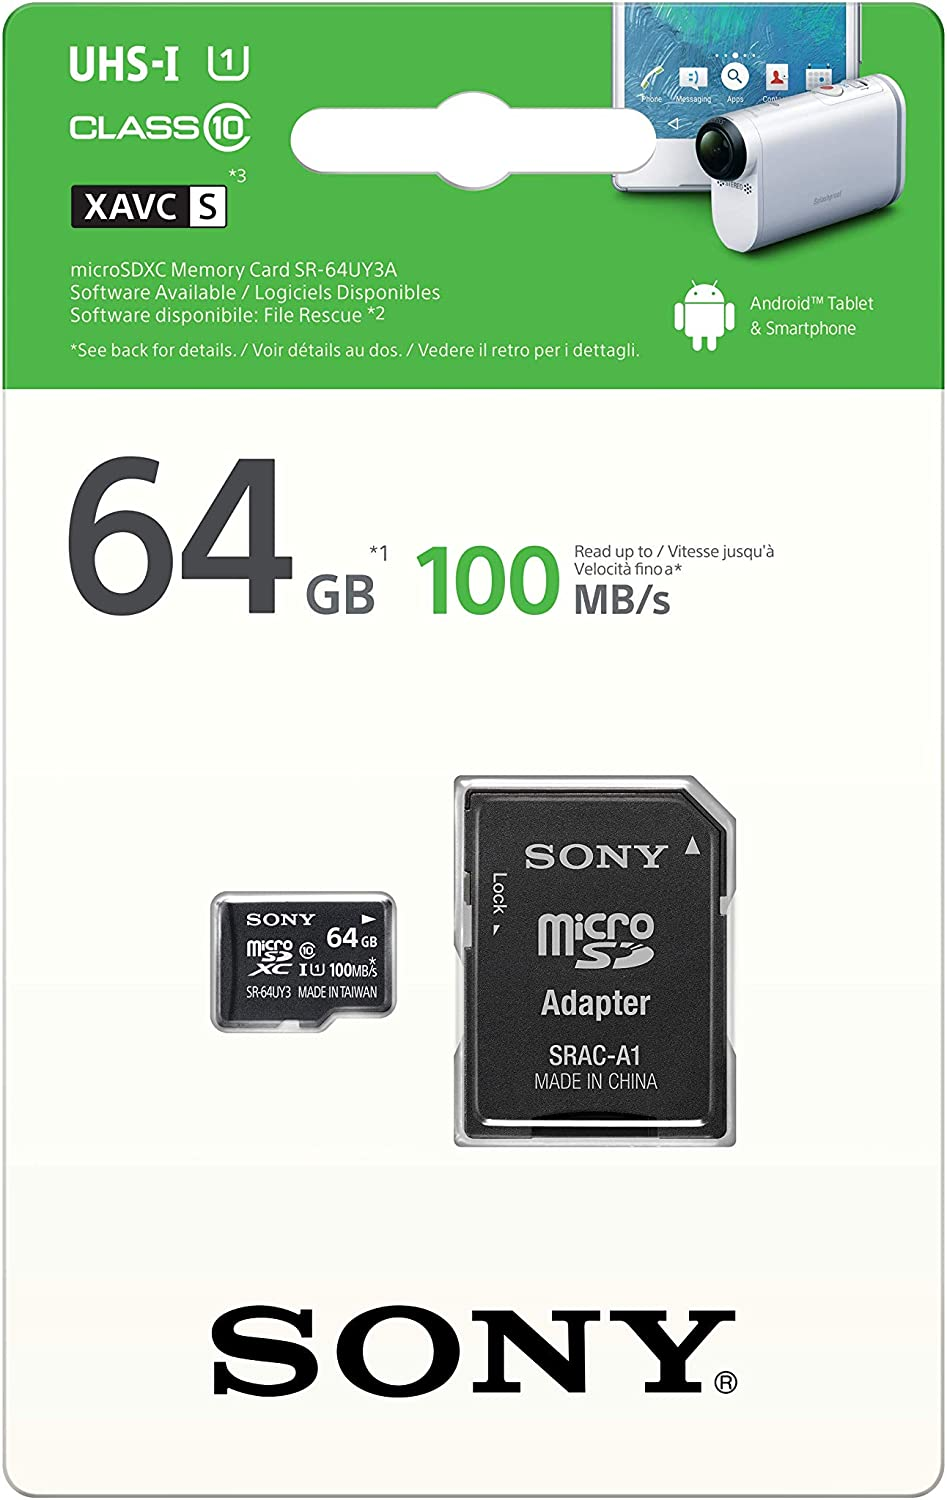 Sony HDR-PJ620 Camcorder Memory Card 2 x 32GB Secure Digital High Capacity Memory Cards SDHC 2 Pack